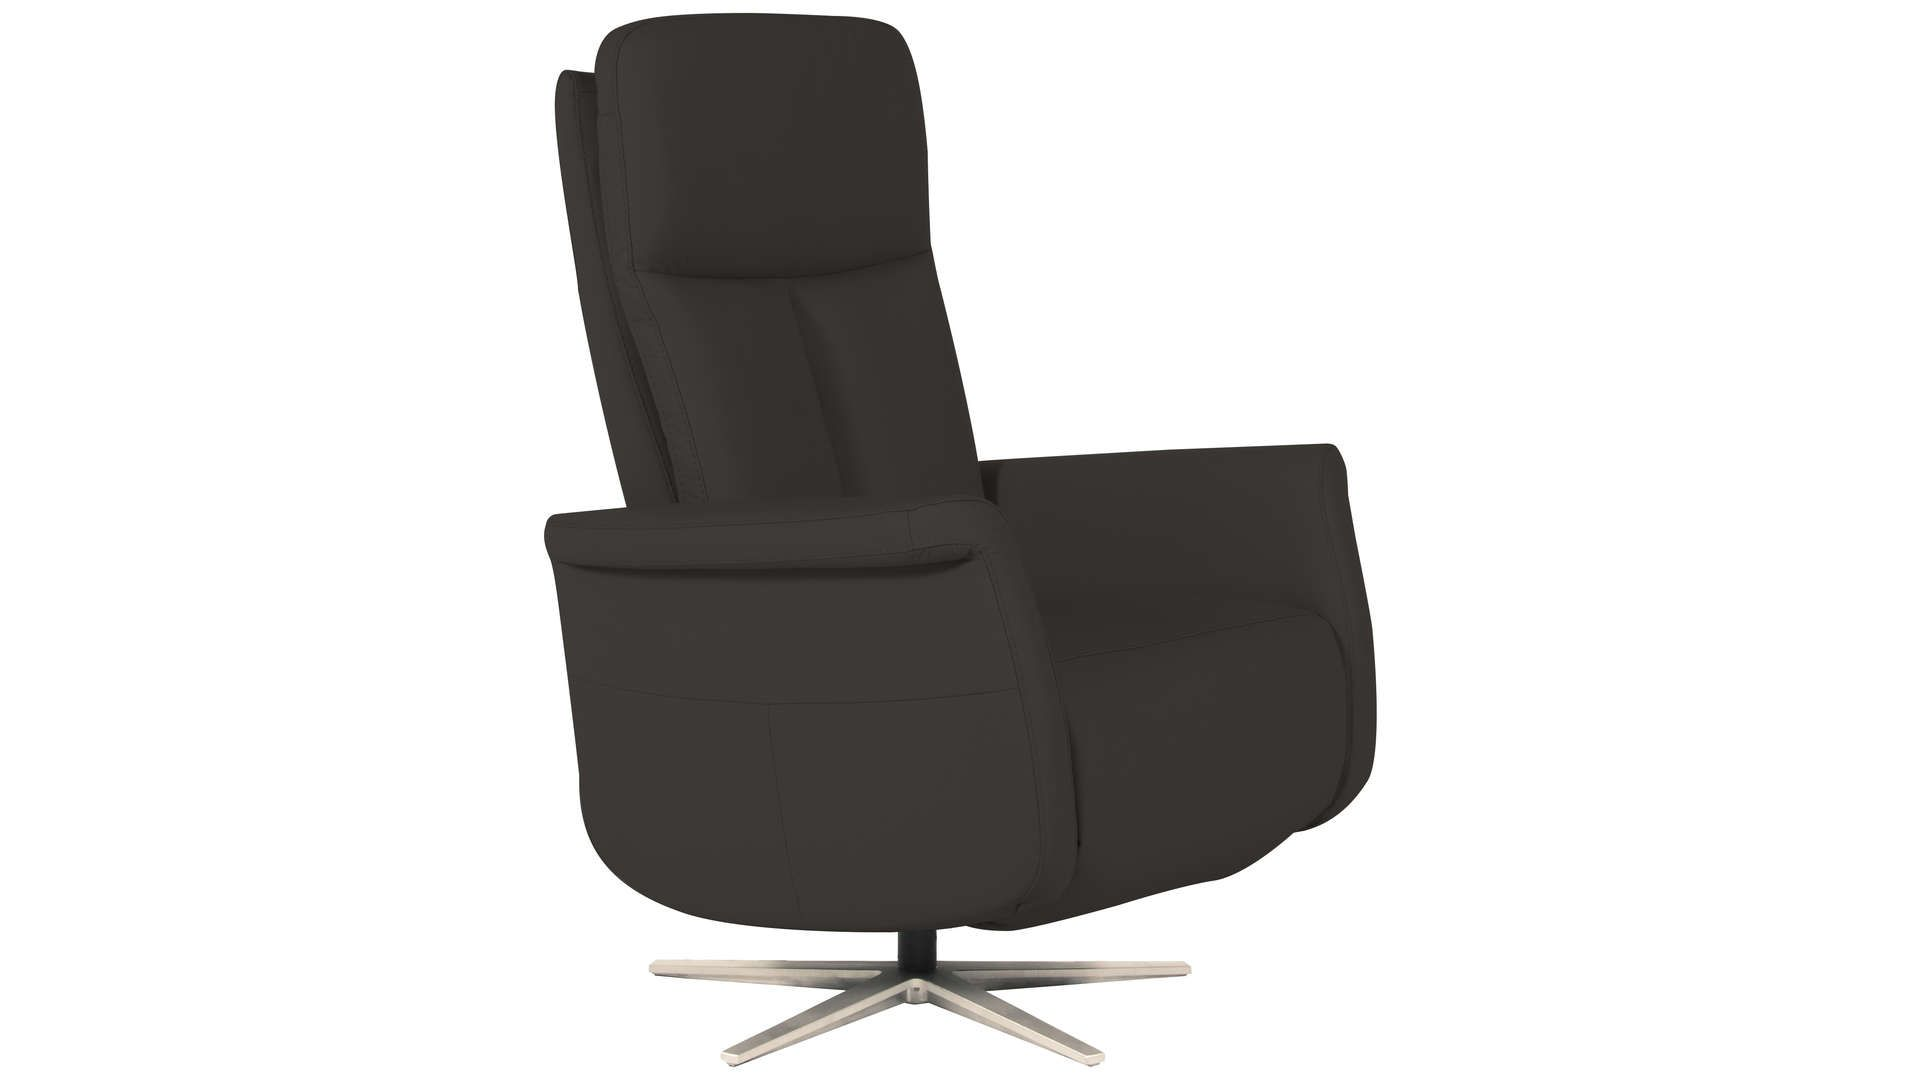 Fauteuil Relax 100 Cuir Lindy Fauteuil Relax Fauteuil Et Relax